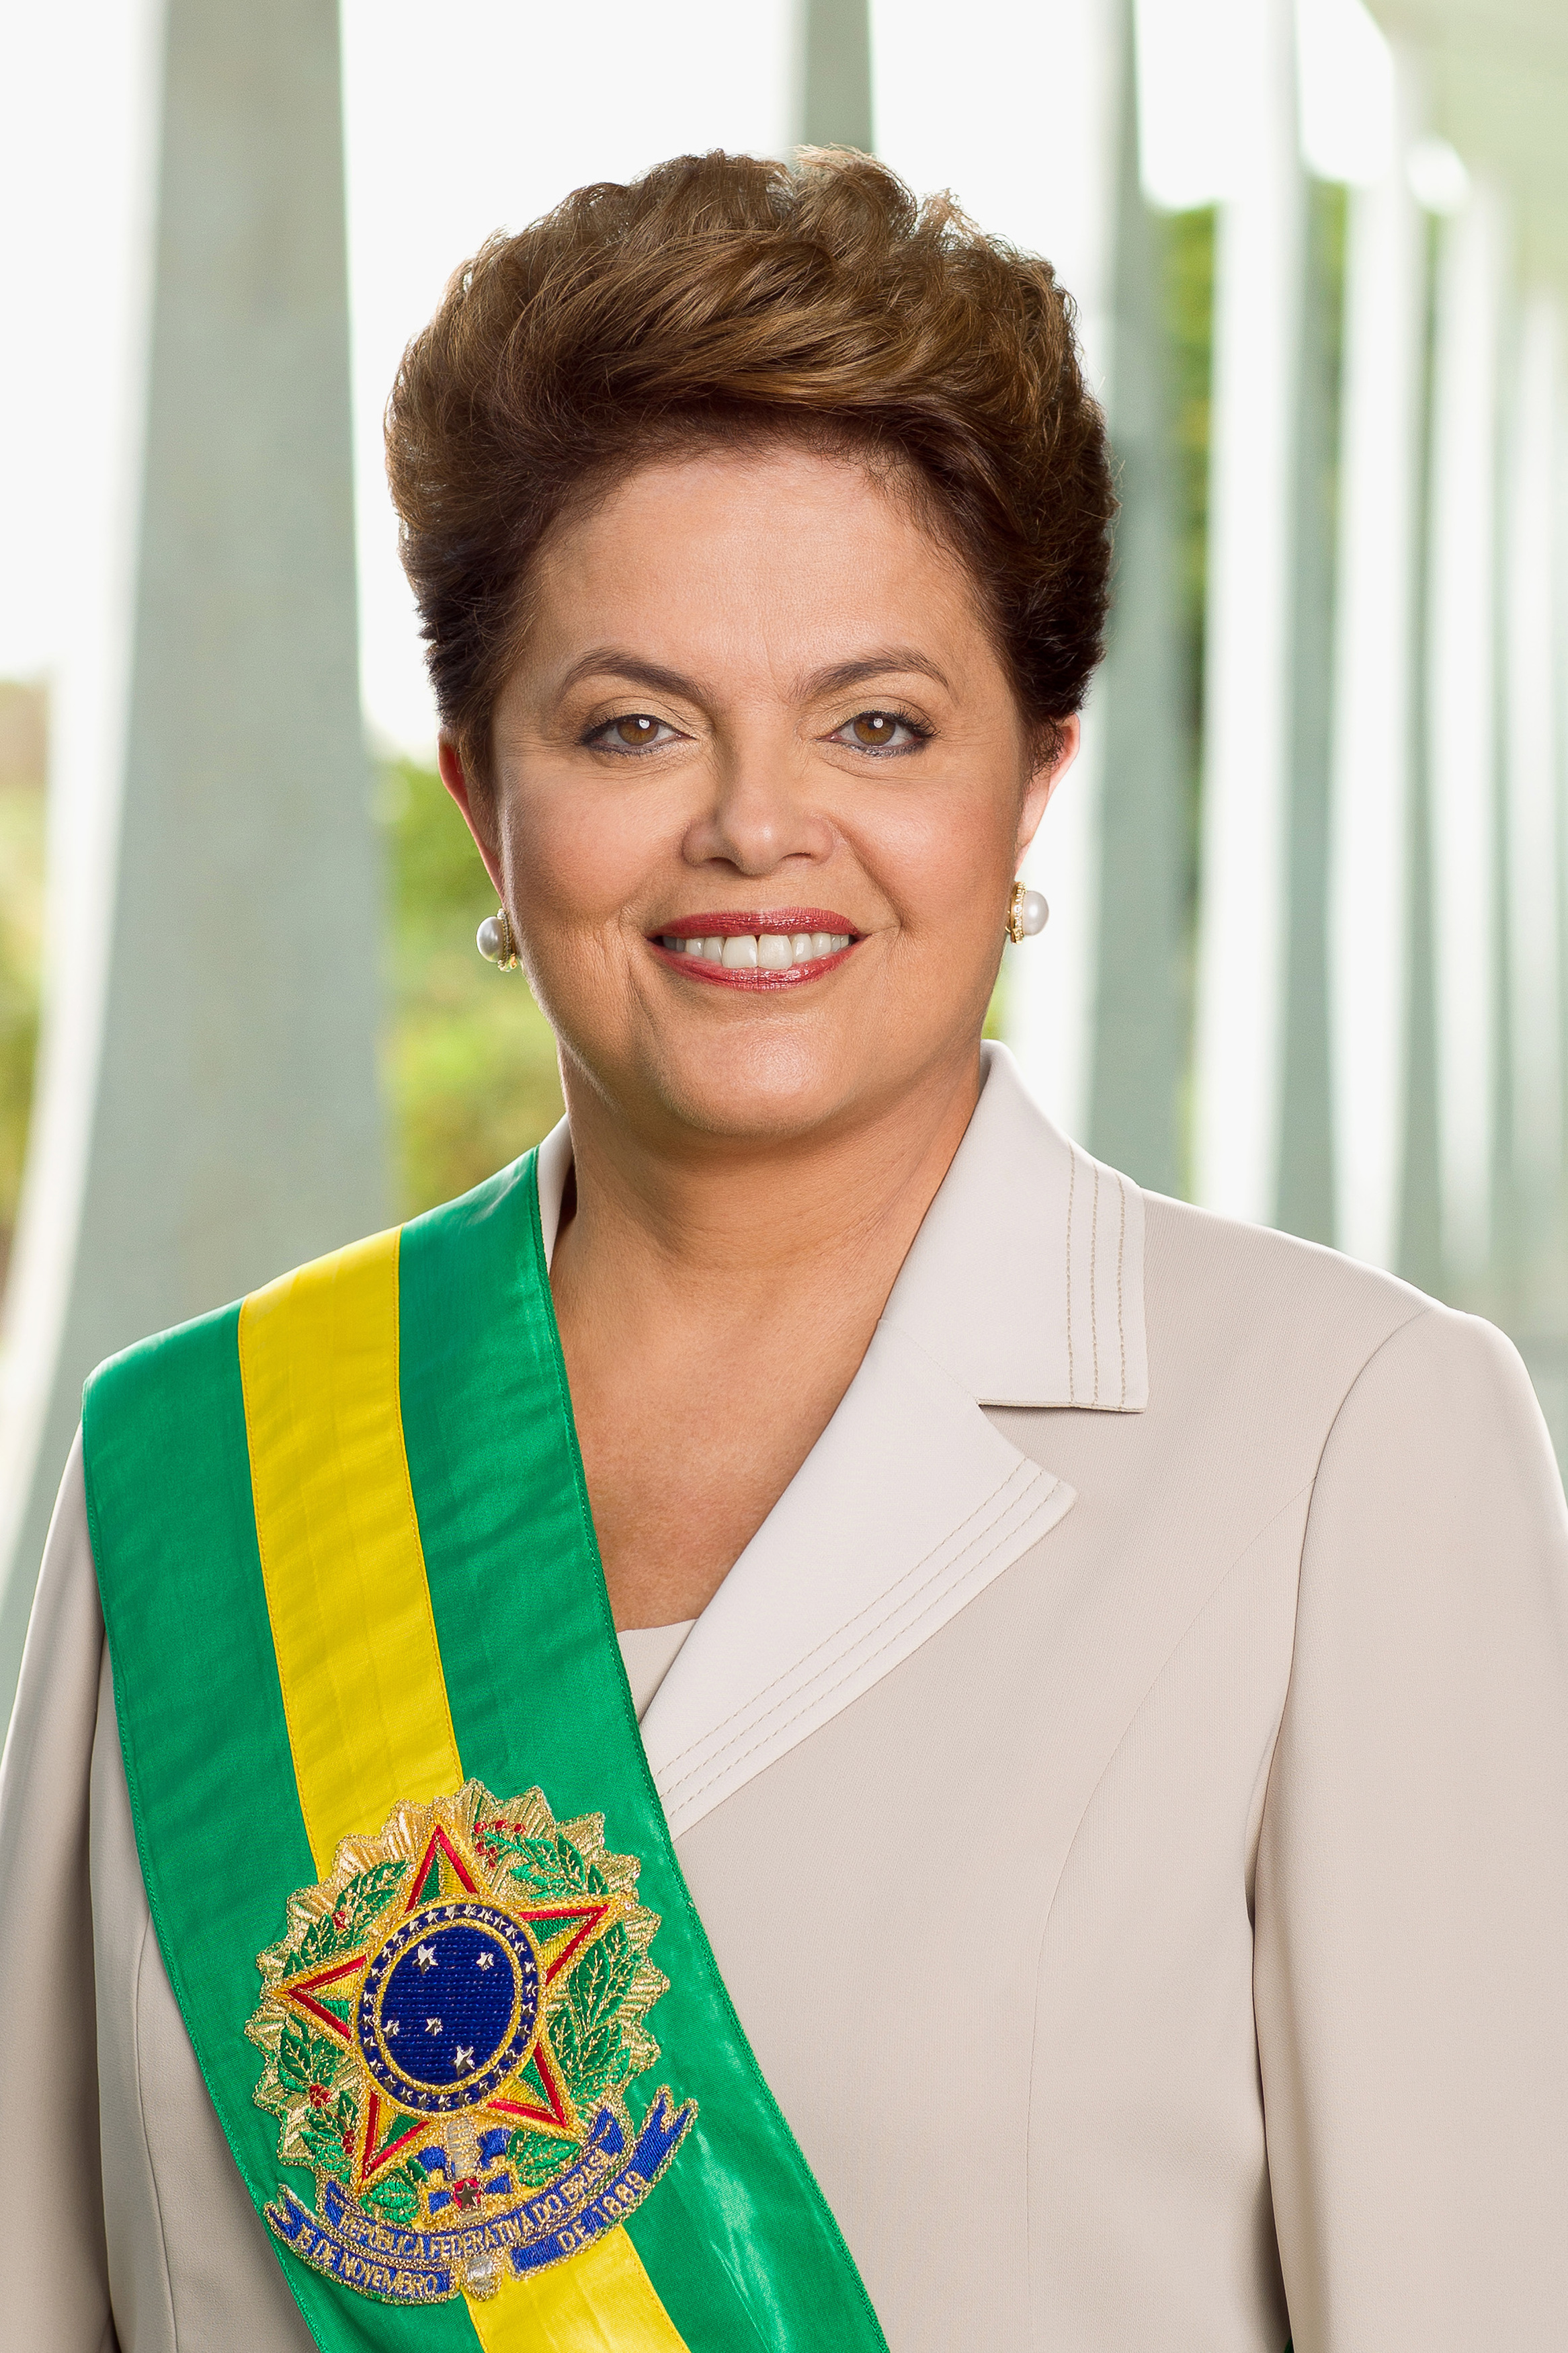 The 69-year old daughter of father Pedro Rousseff  and mother Dilma Jane da Silva, 174 cm tall Dilma Rousseff in 2017 photo